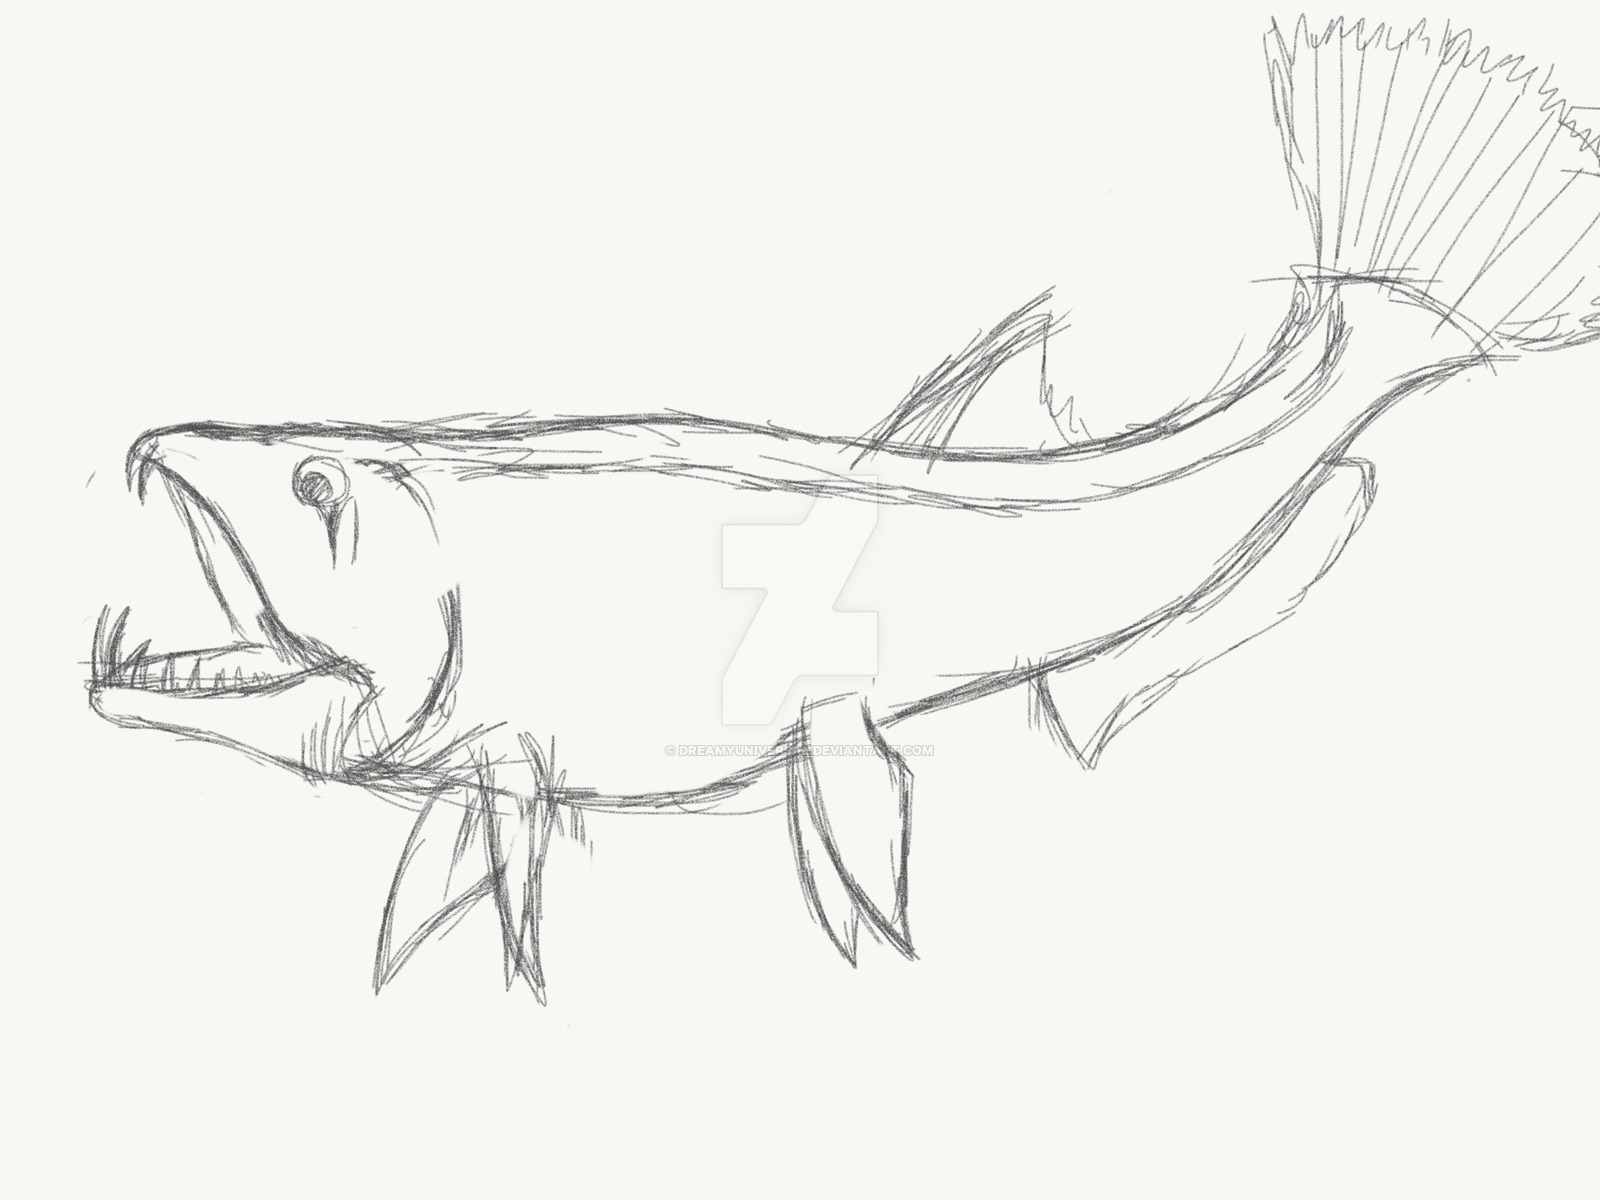 1600x1200 Tries To Sketch My Favourite Fish By Dreamyuniversal